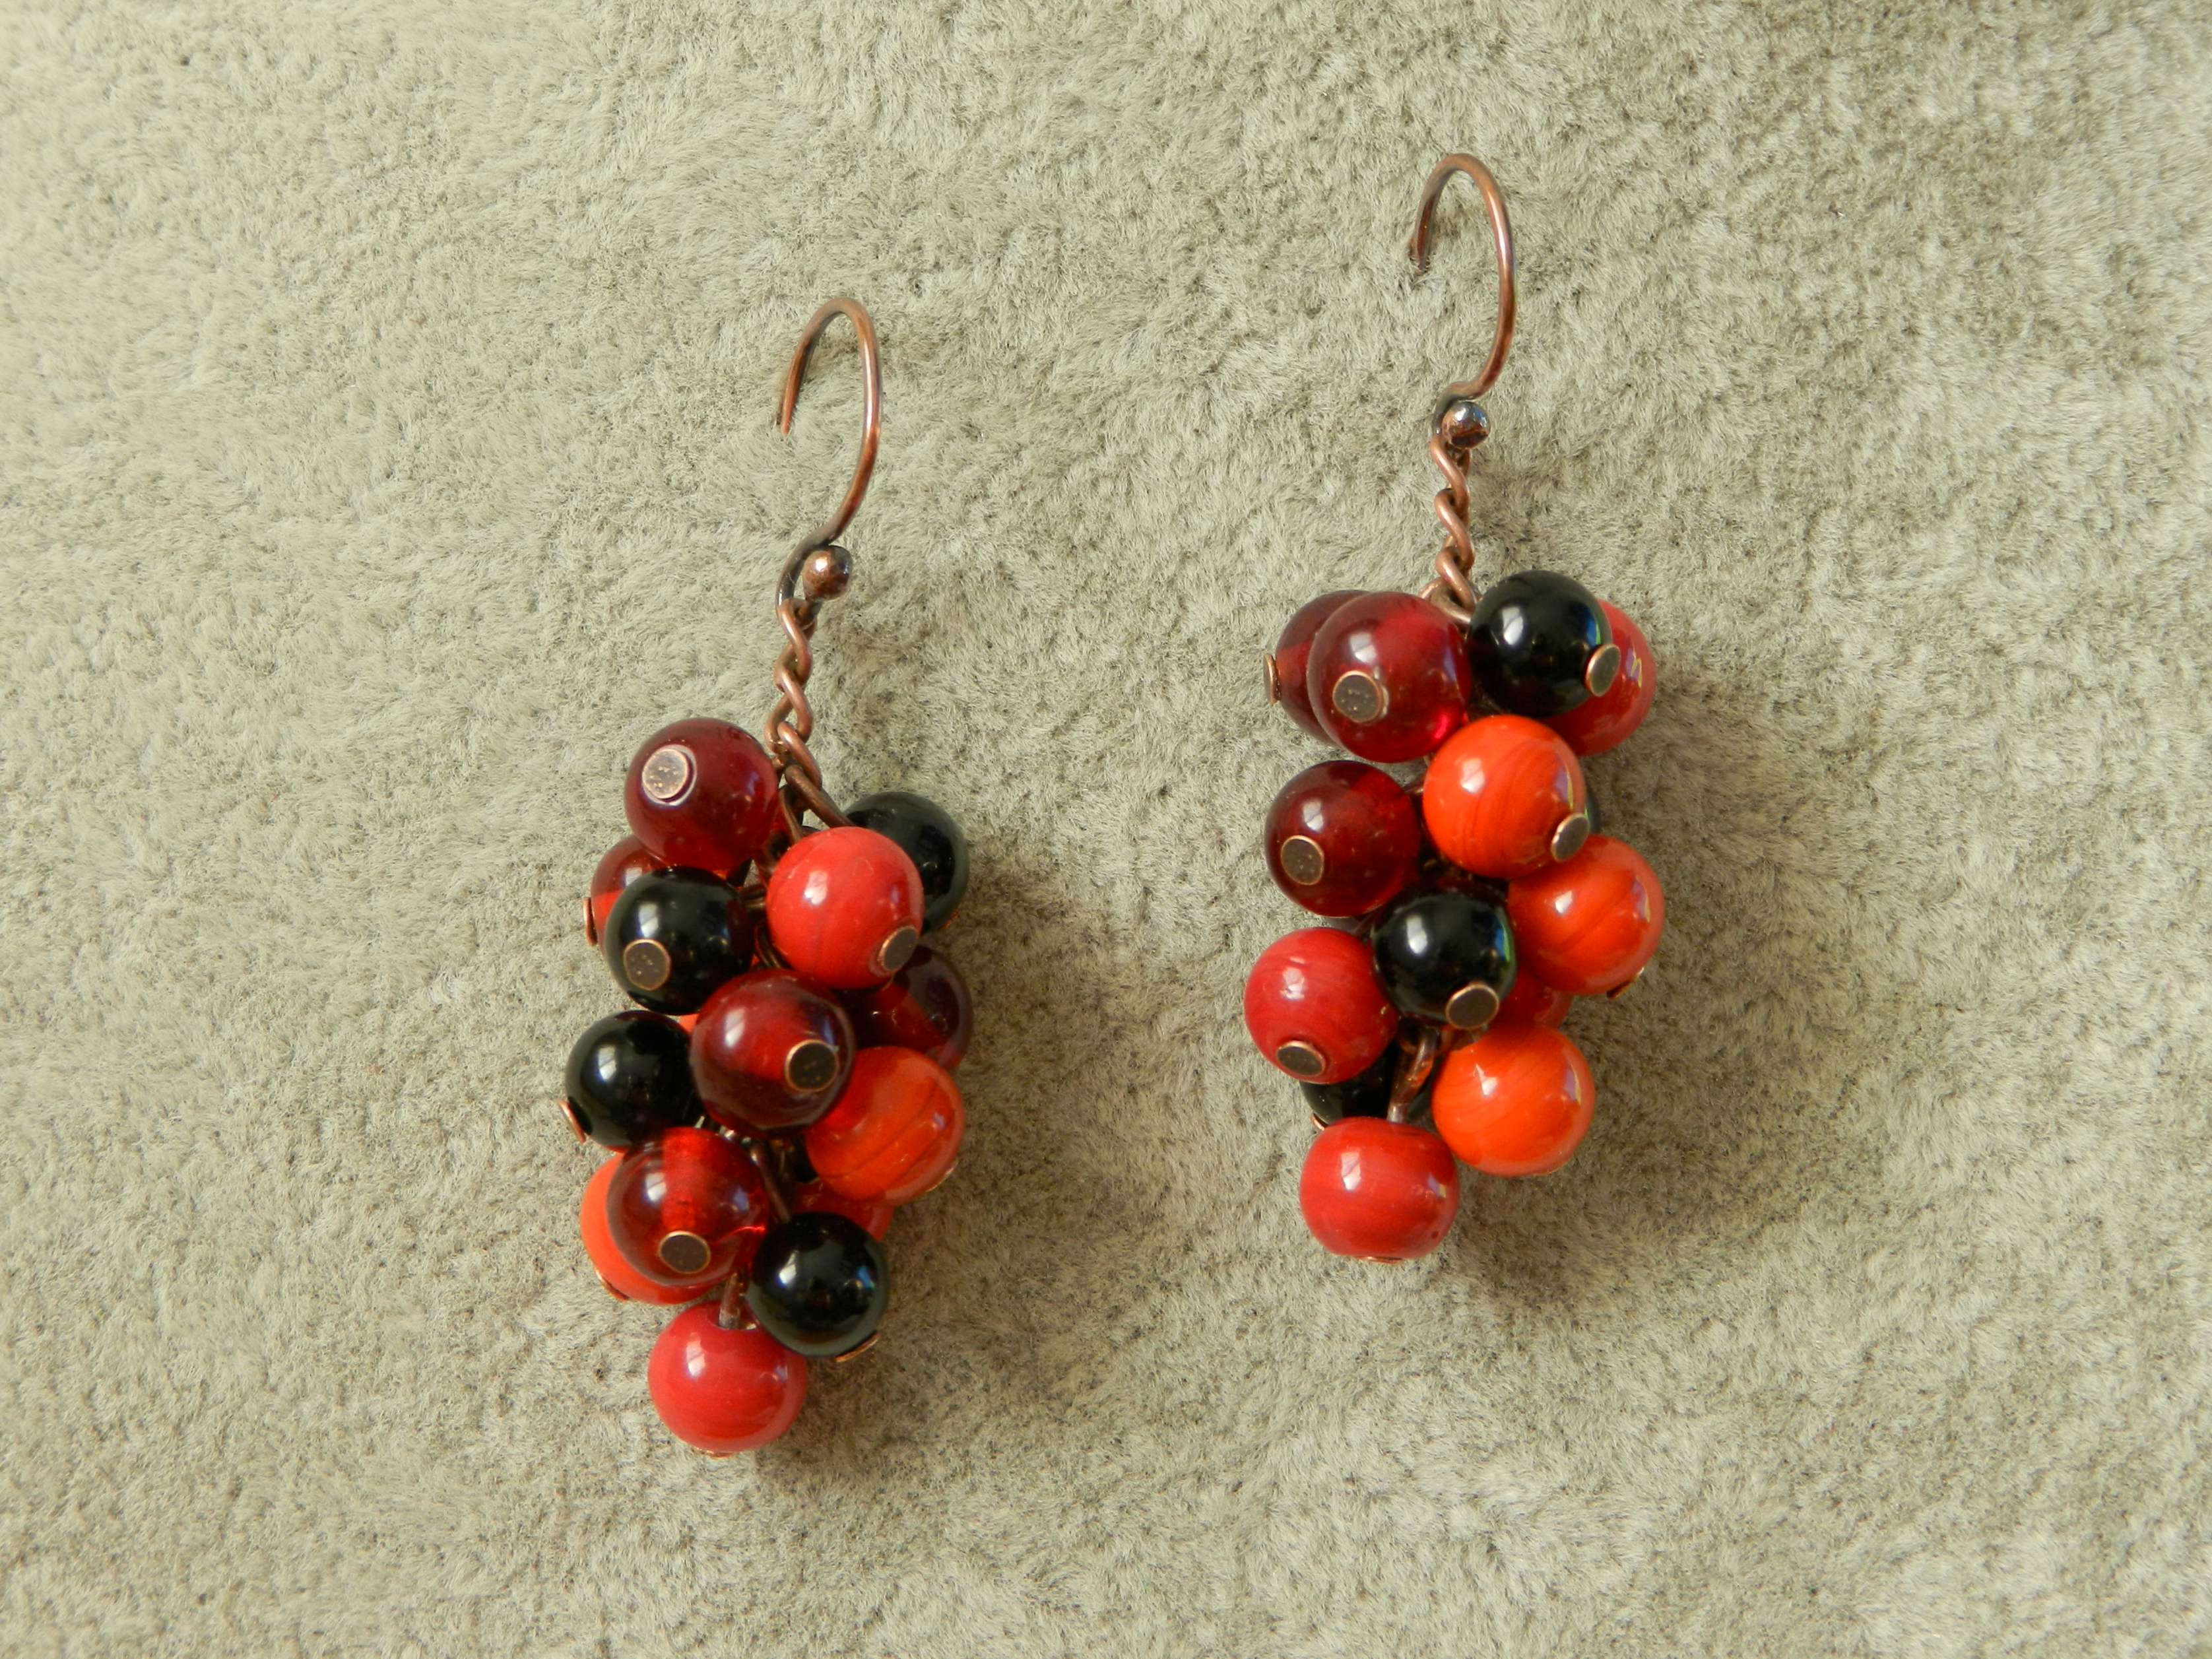 Vintage glass and black onyx cluster earrings